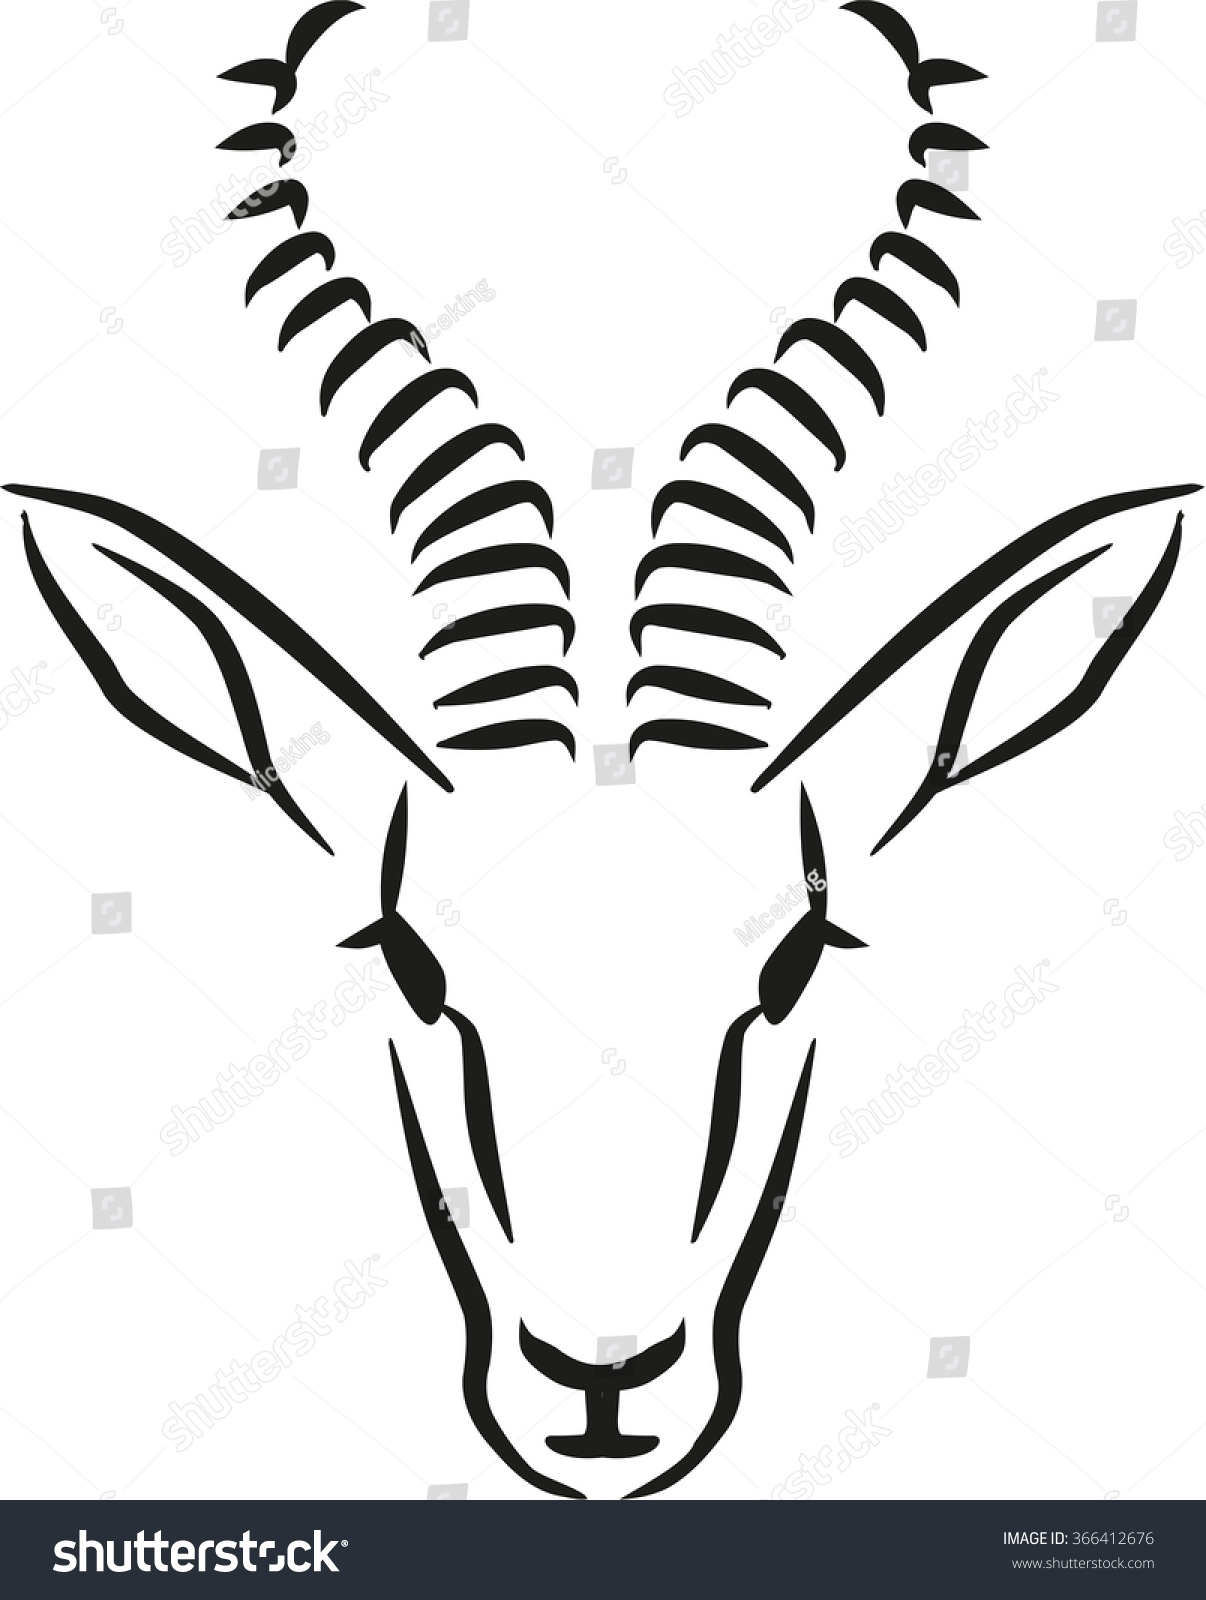 clipart springbok - photo #25